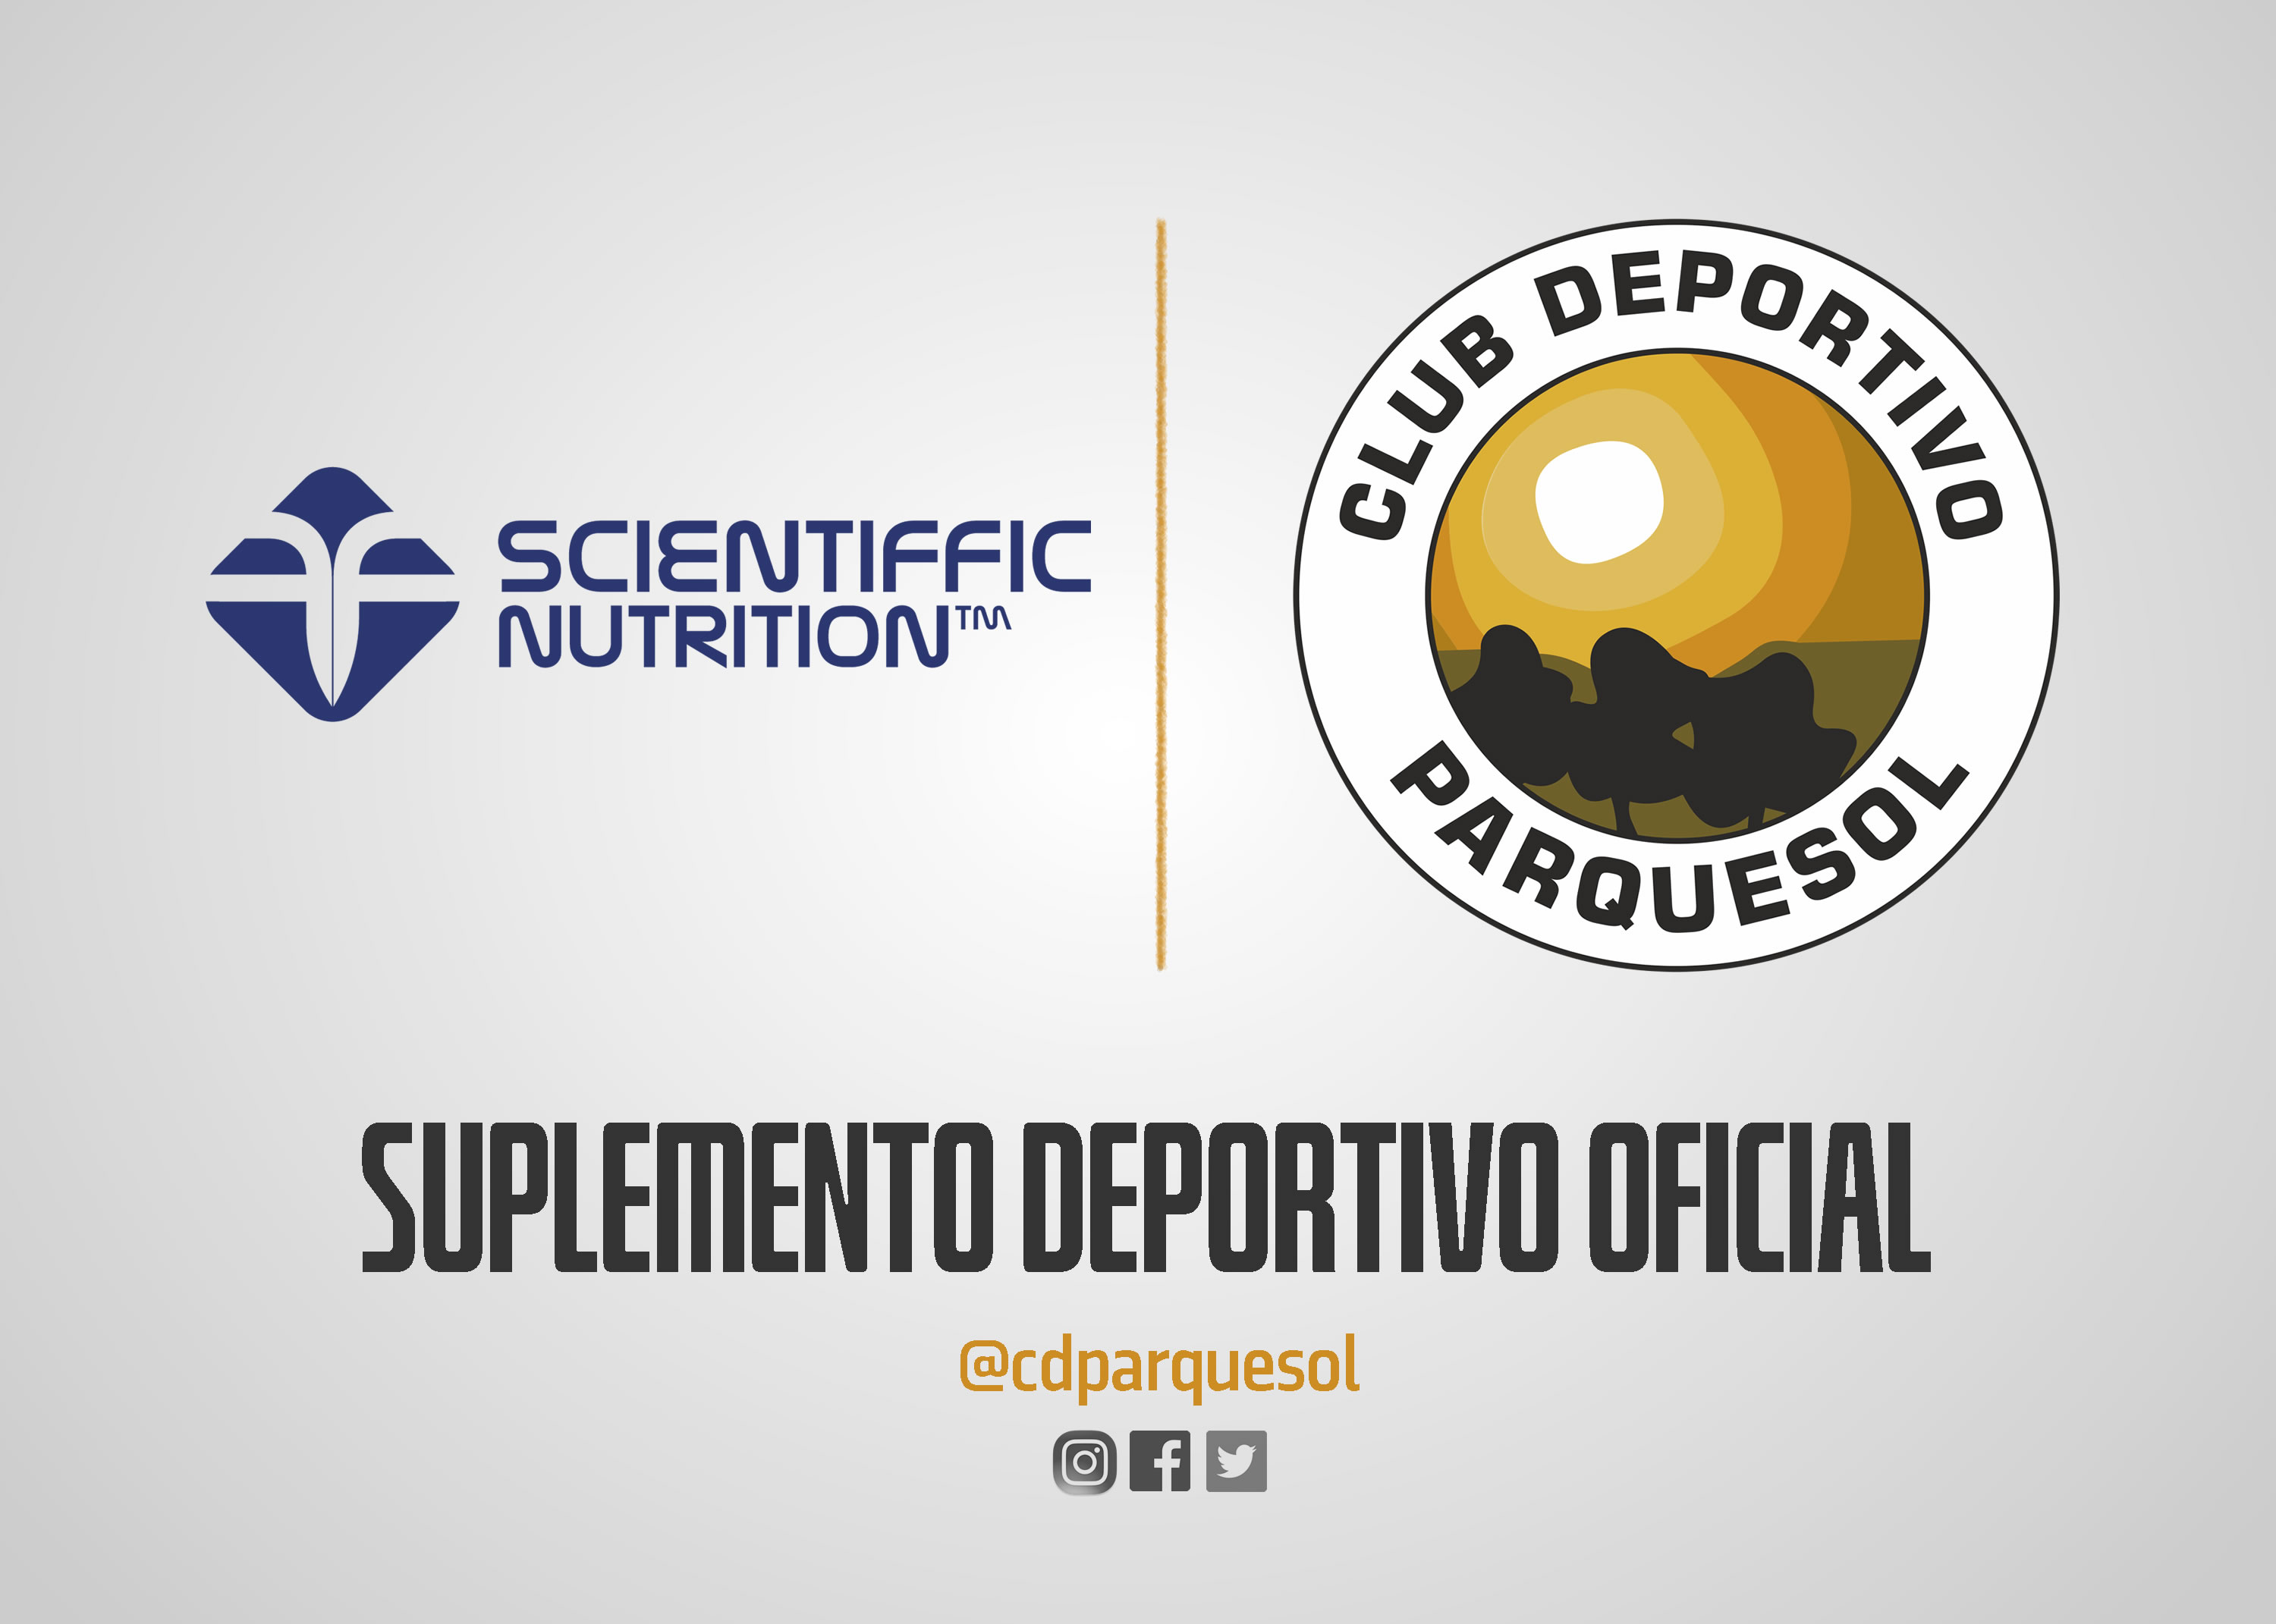 Scientiffic Nutrition nuevo Suplemento Deportivo Oficial del club